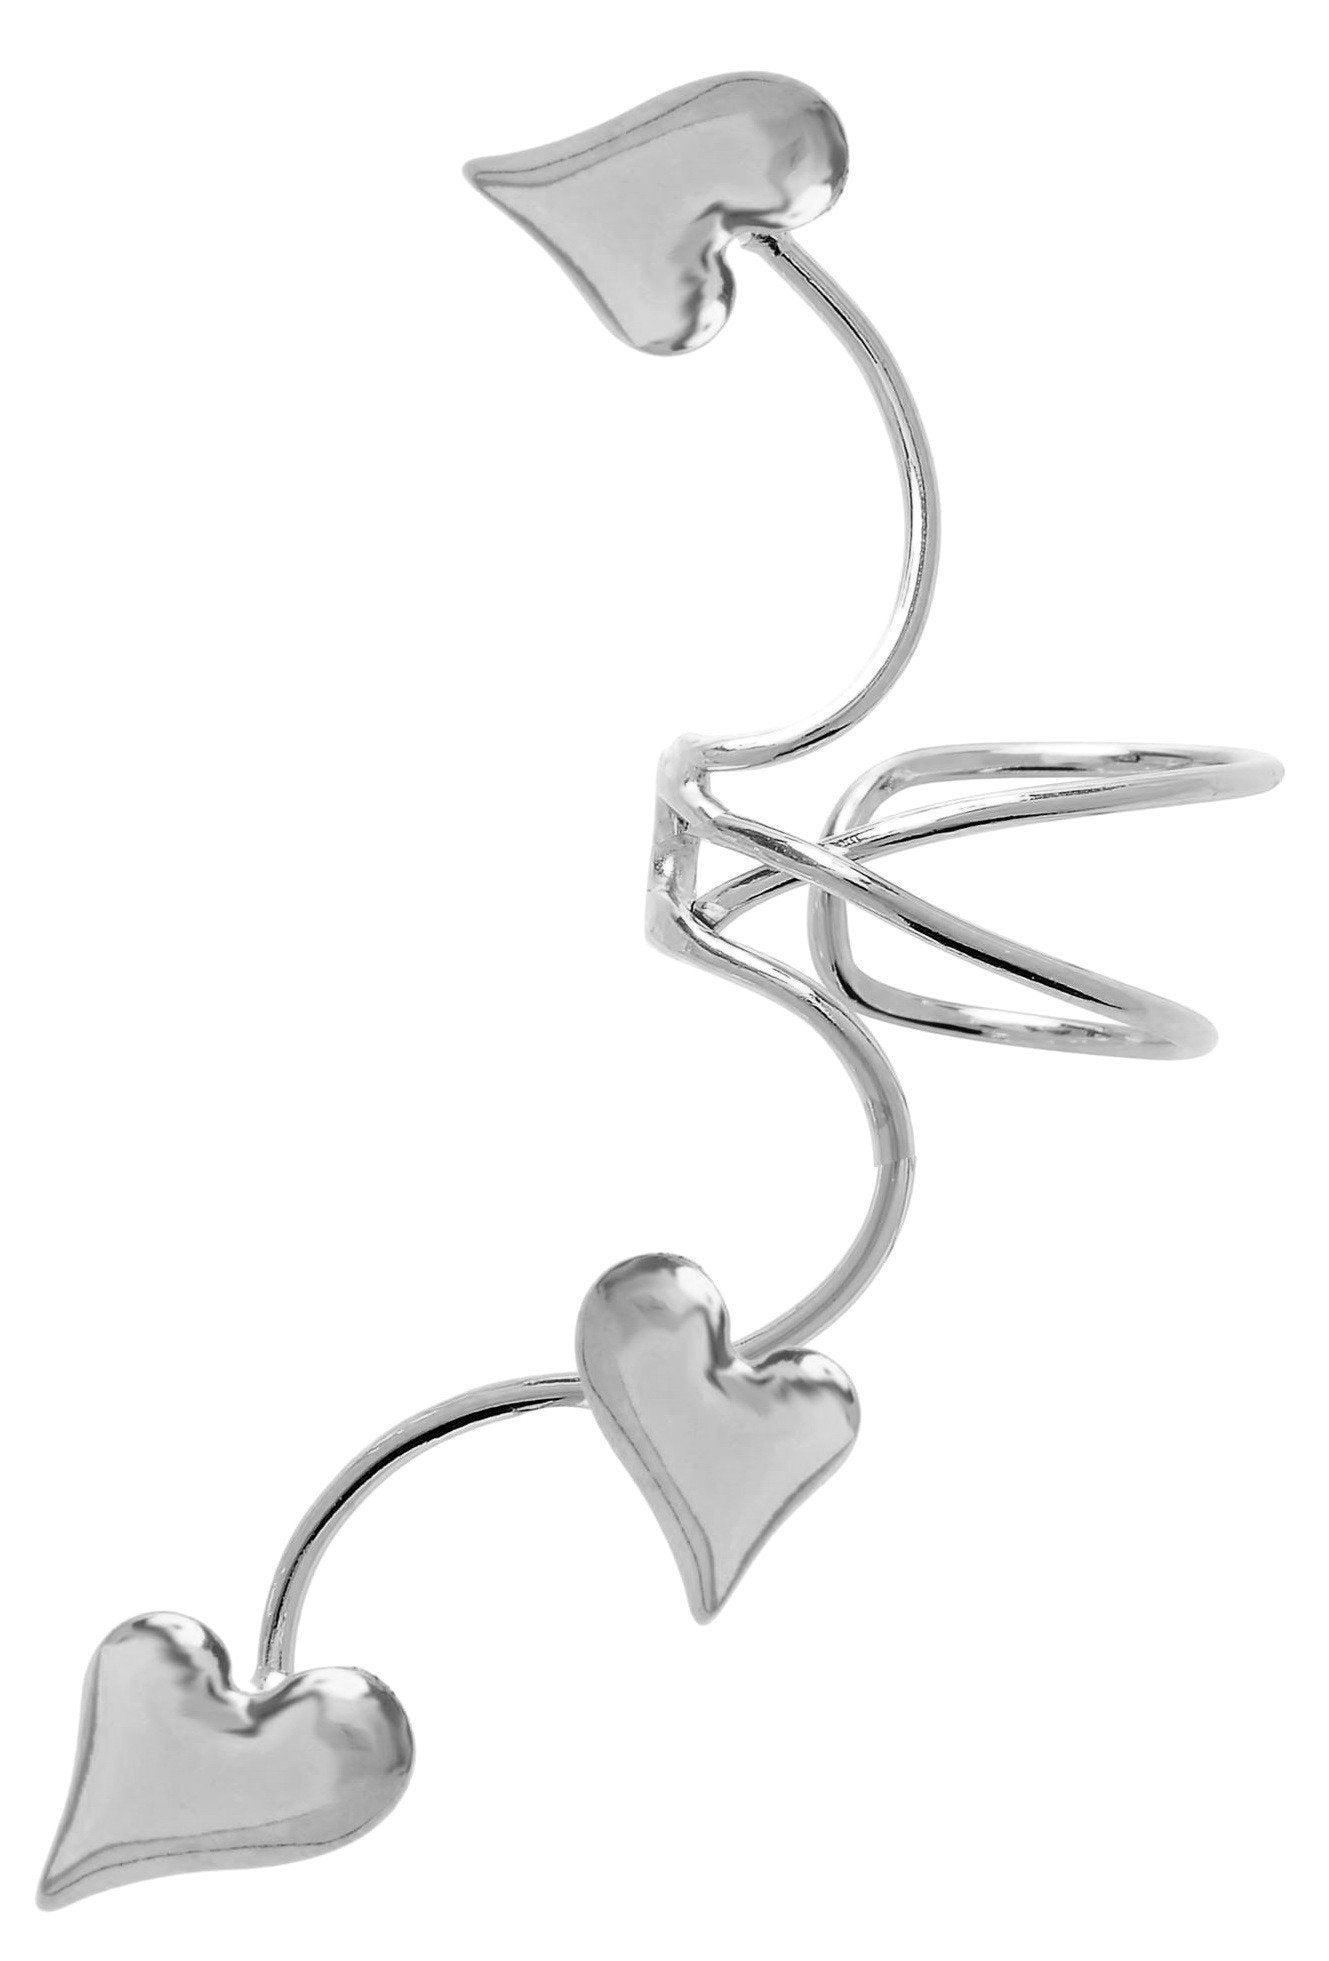 Ear Cuff 3 Puffed Hearts /& CZ Non-pierced Long Wave Earring Wraps in Gold or Rhodium Over Sterling Silver